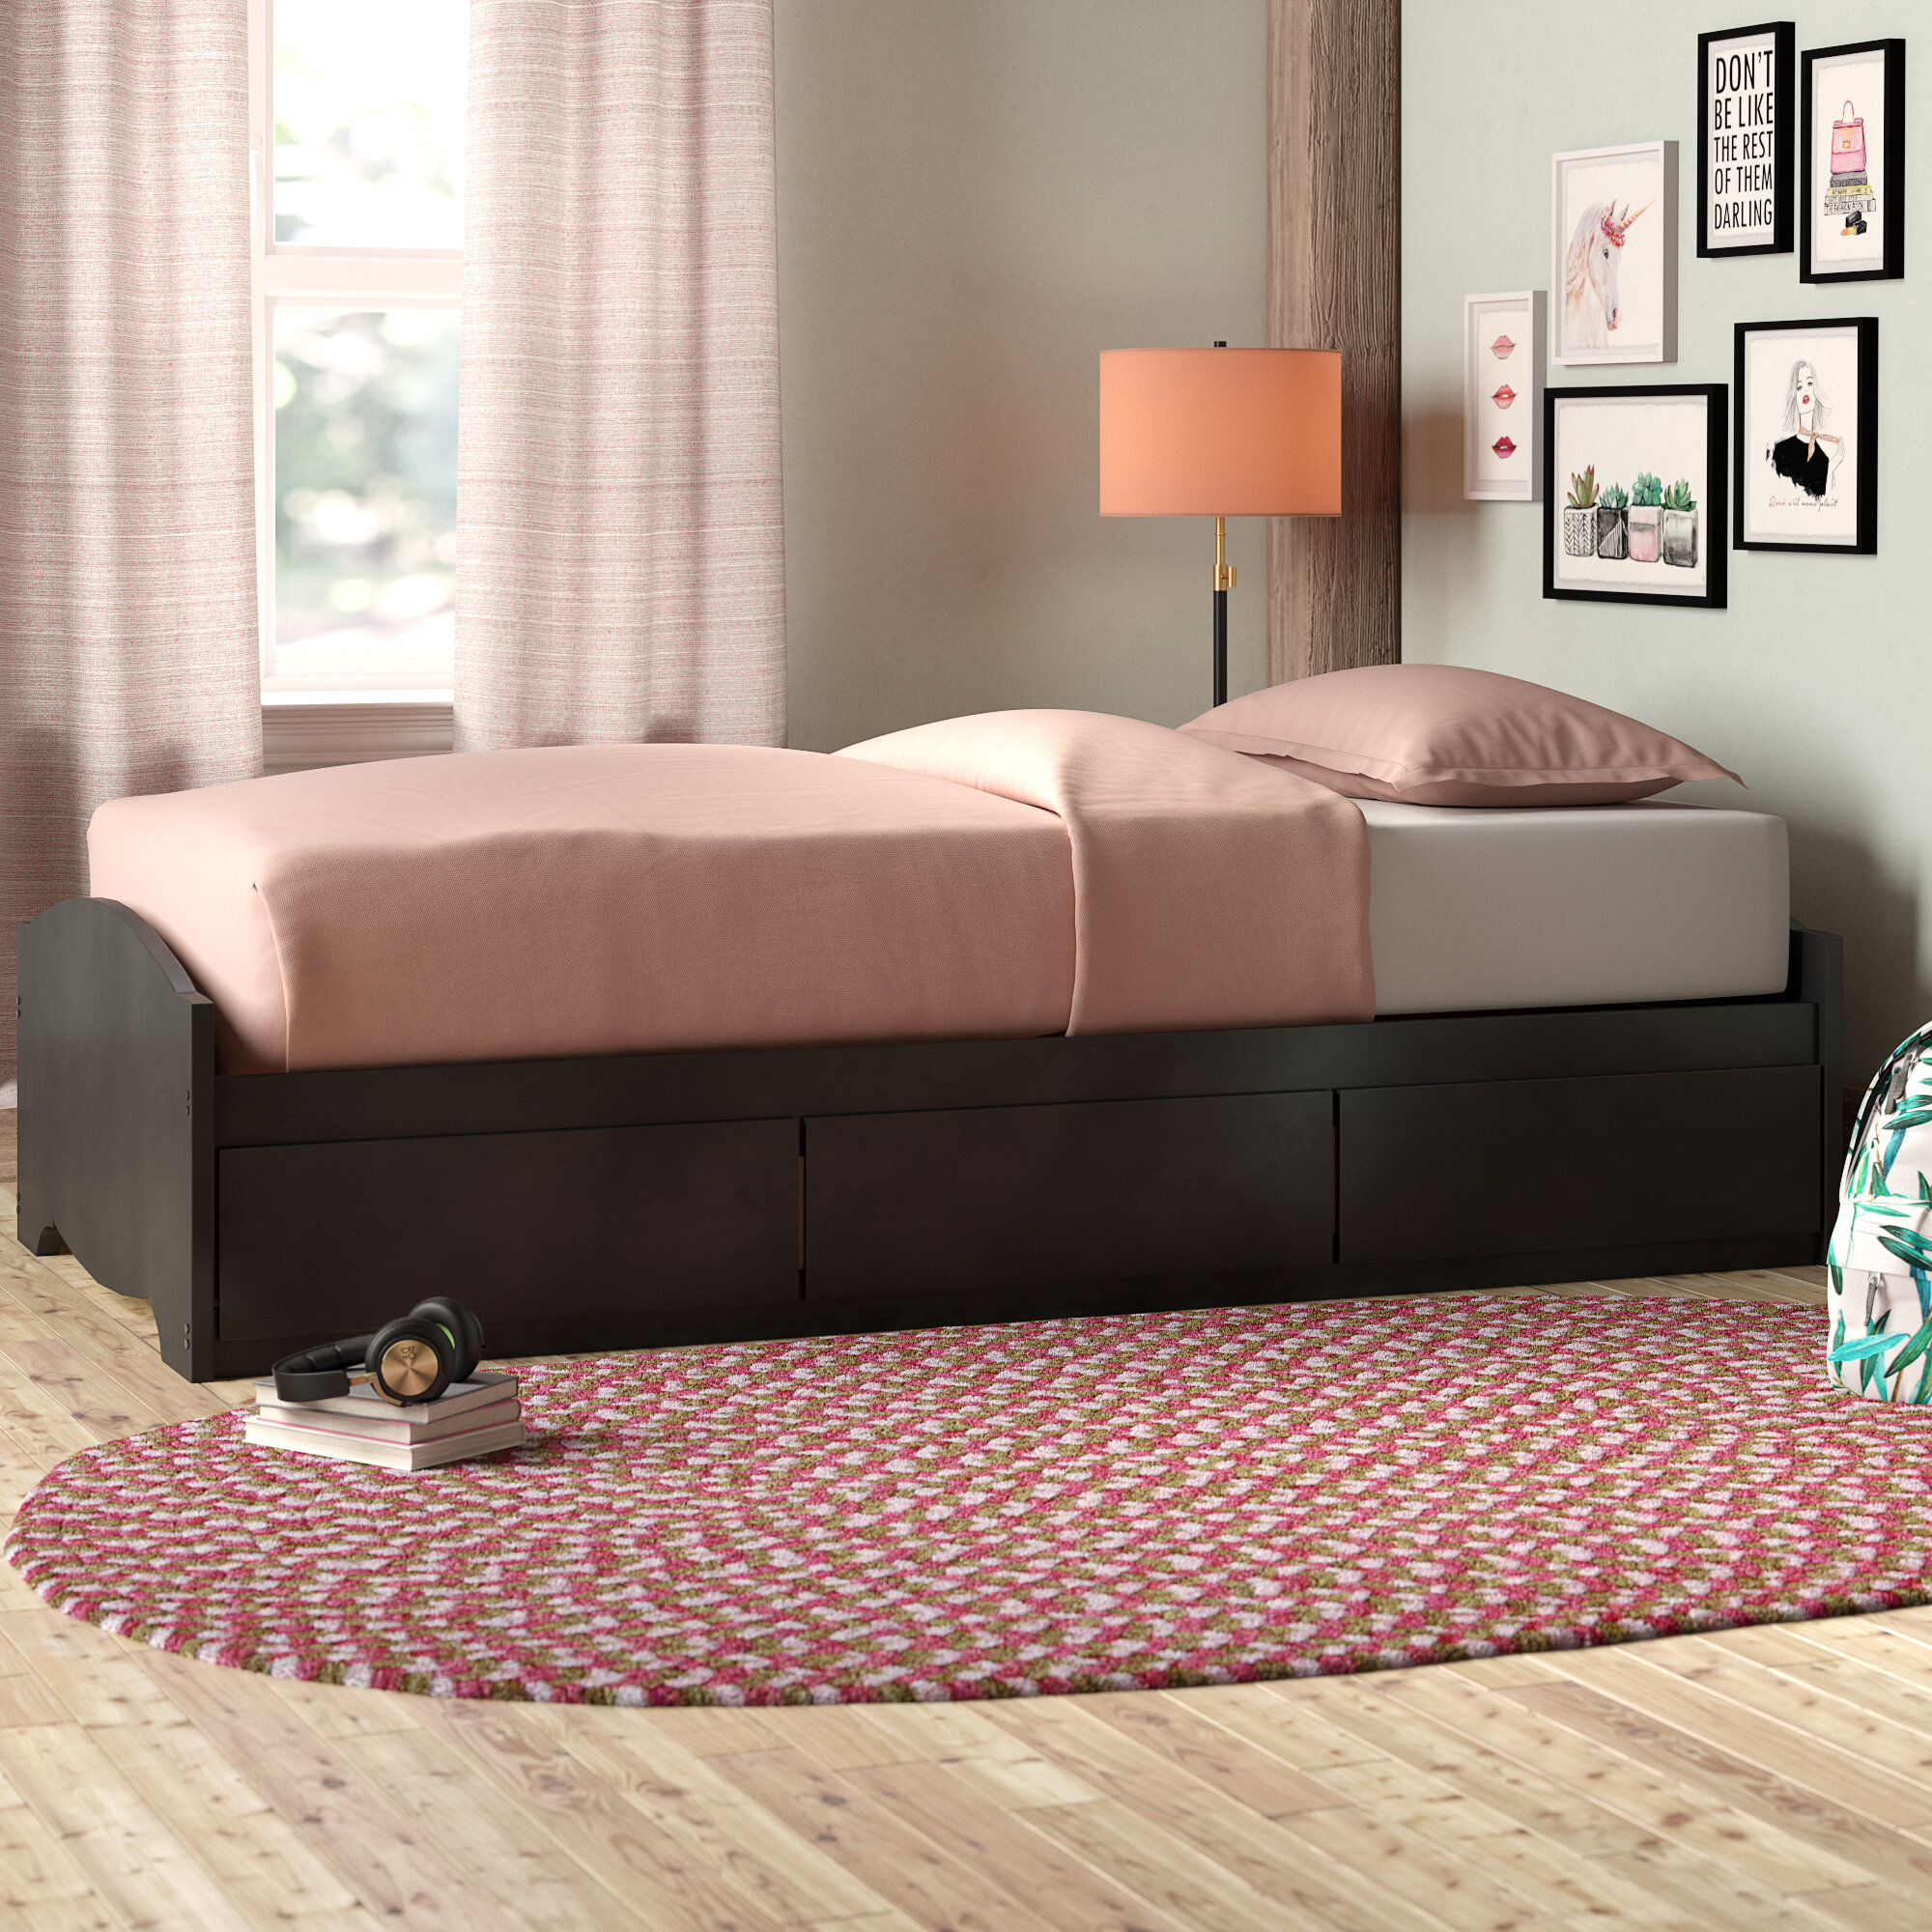 Harriet Bee Nolanville Extra Long Twin Mate's & Captain's Bed with